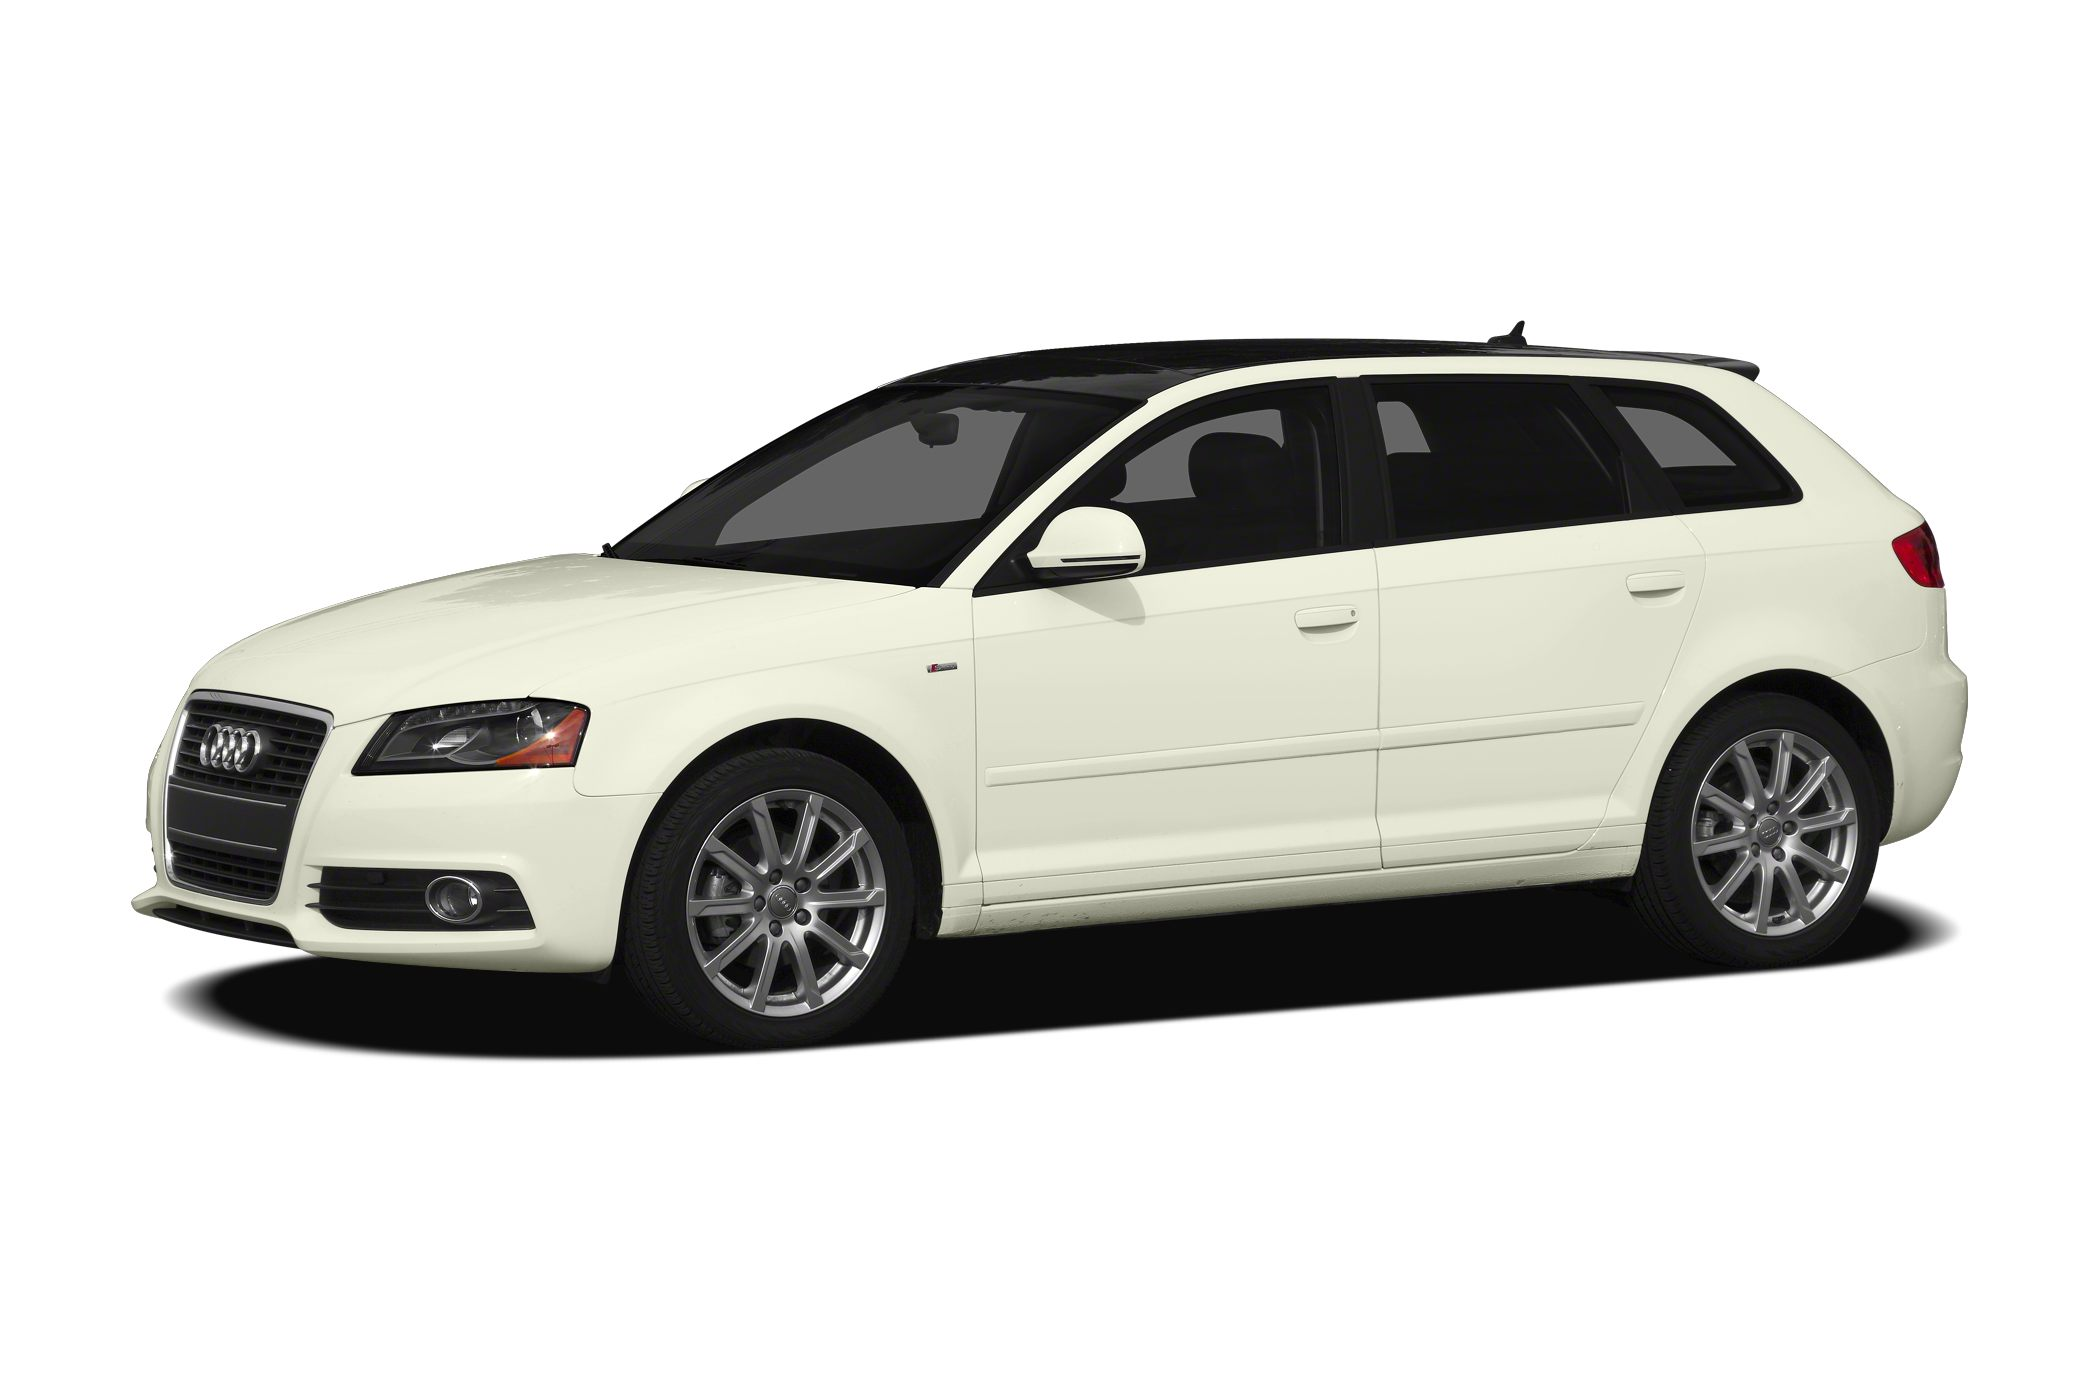 2010 Audi A3 2.0 TDI Premium Hatchback for sale in East Greenbush for $20,997 with 70,132 miles.